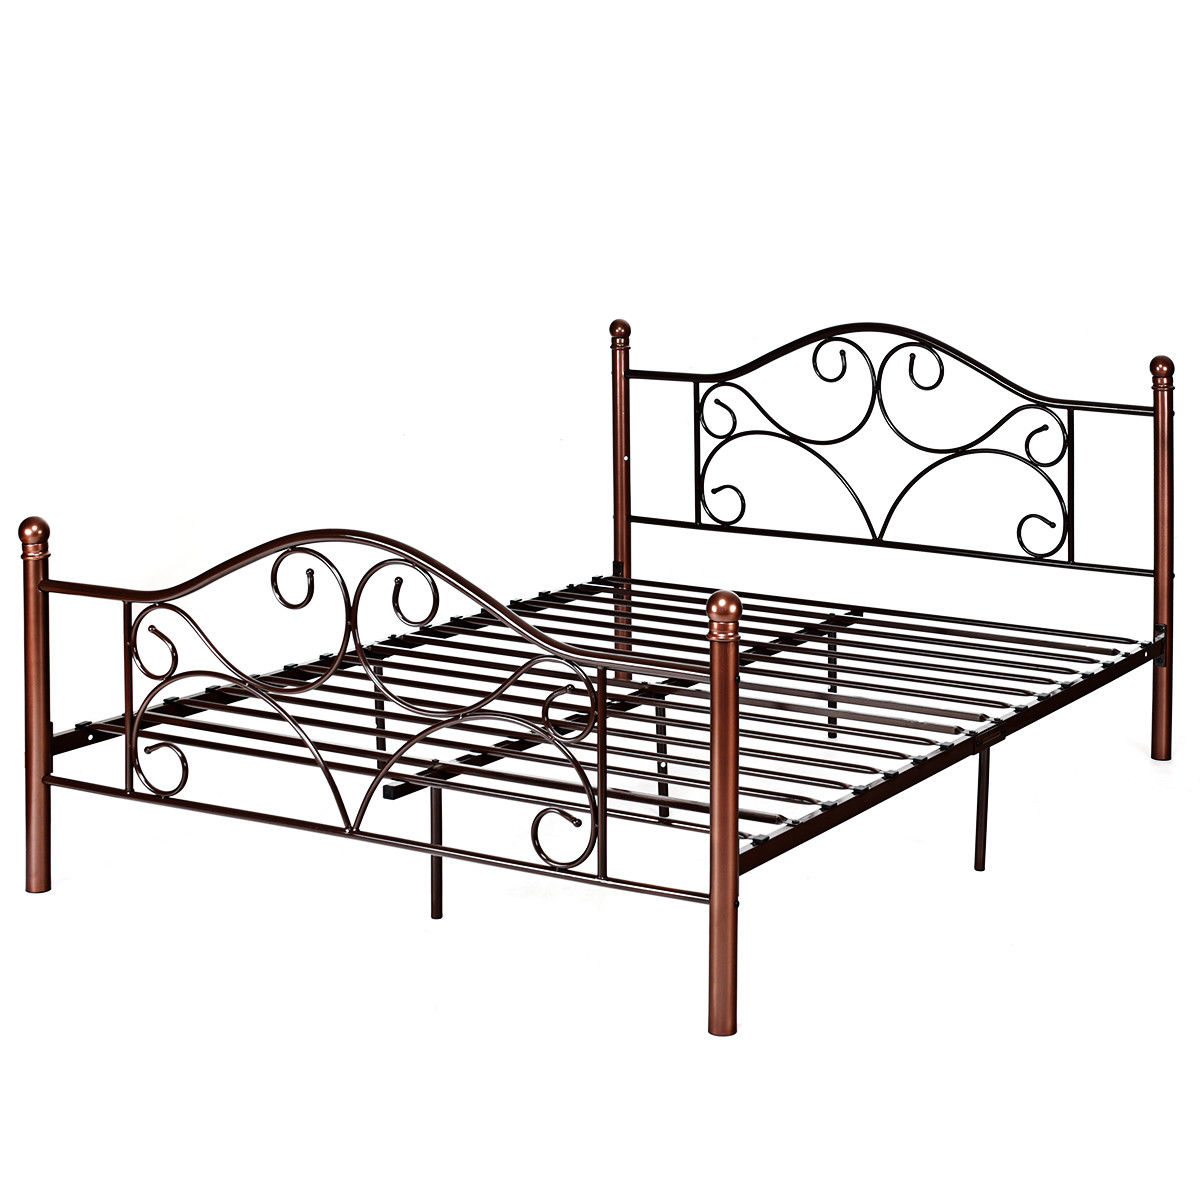 costway queen size steel bed frame platform stable metal slats headboard footboard new. Black Bedroom Furniture Sets. Home Design Ideas